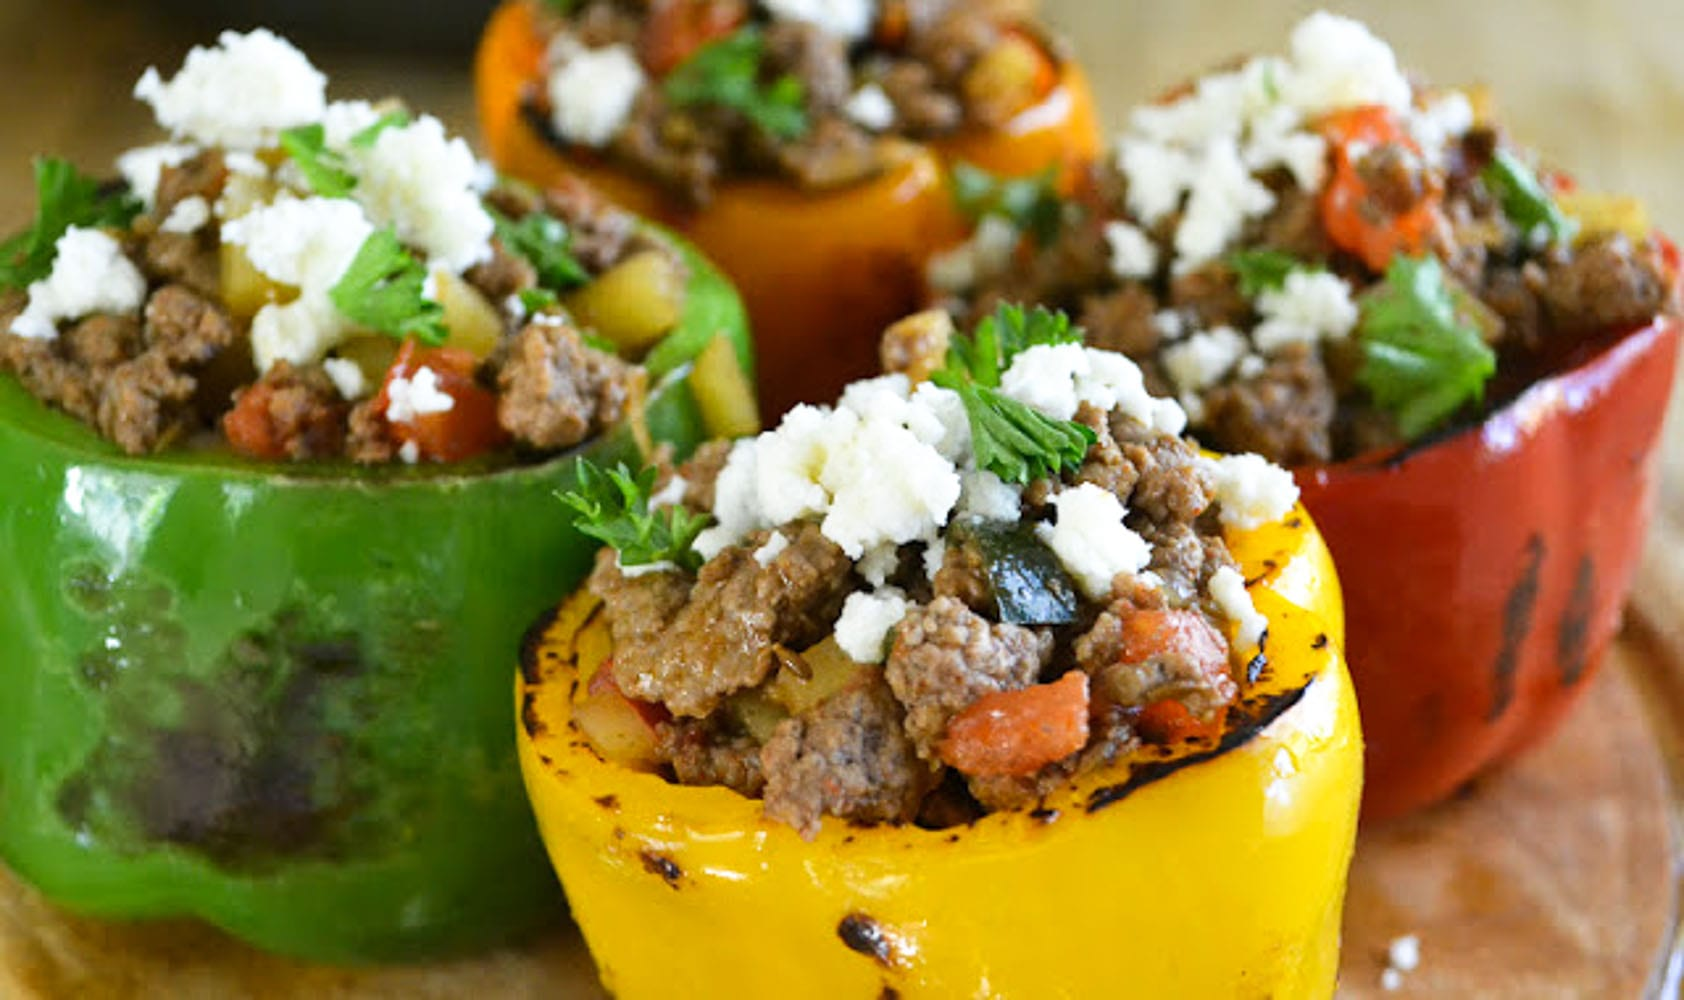 Stuffed Bell Peppers with Picadillo